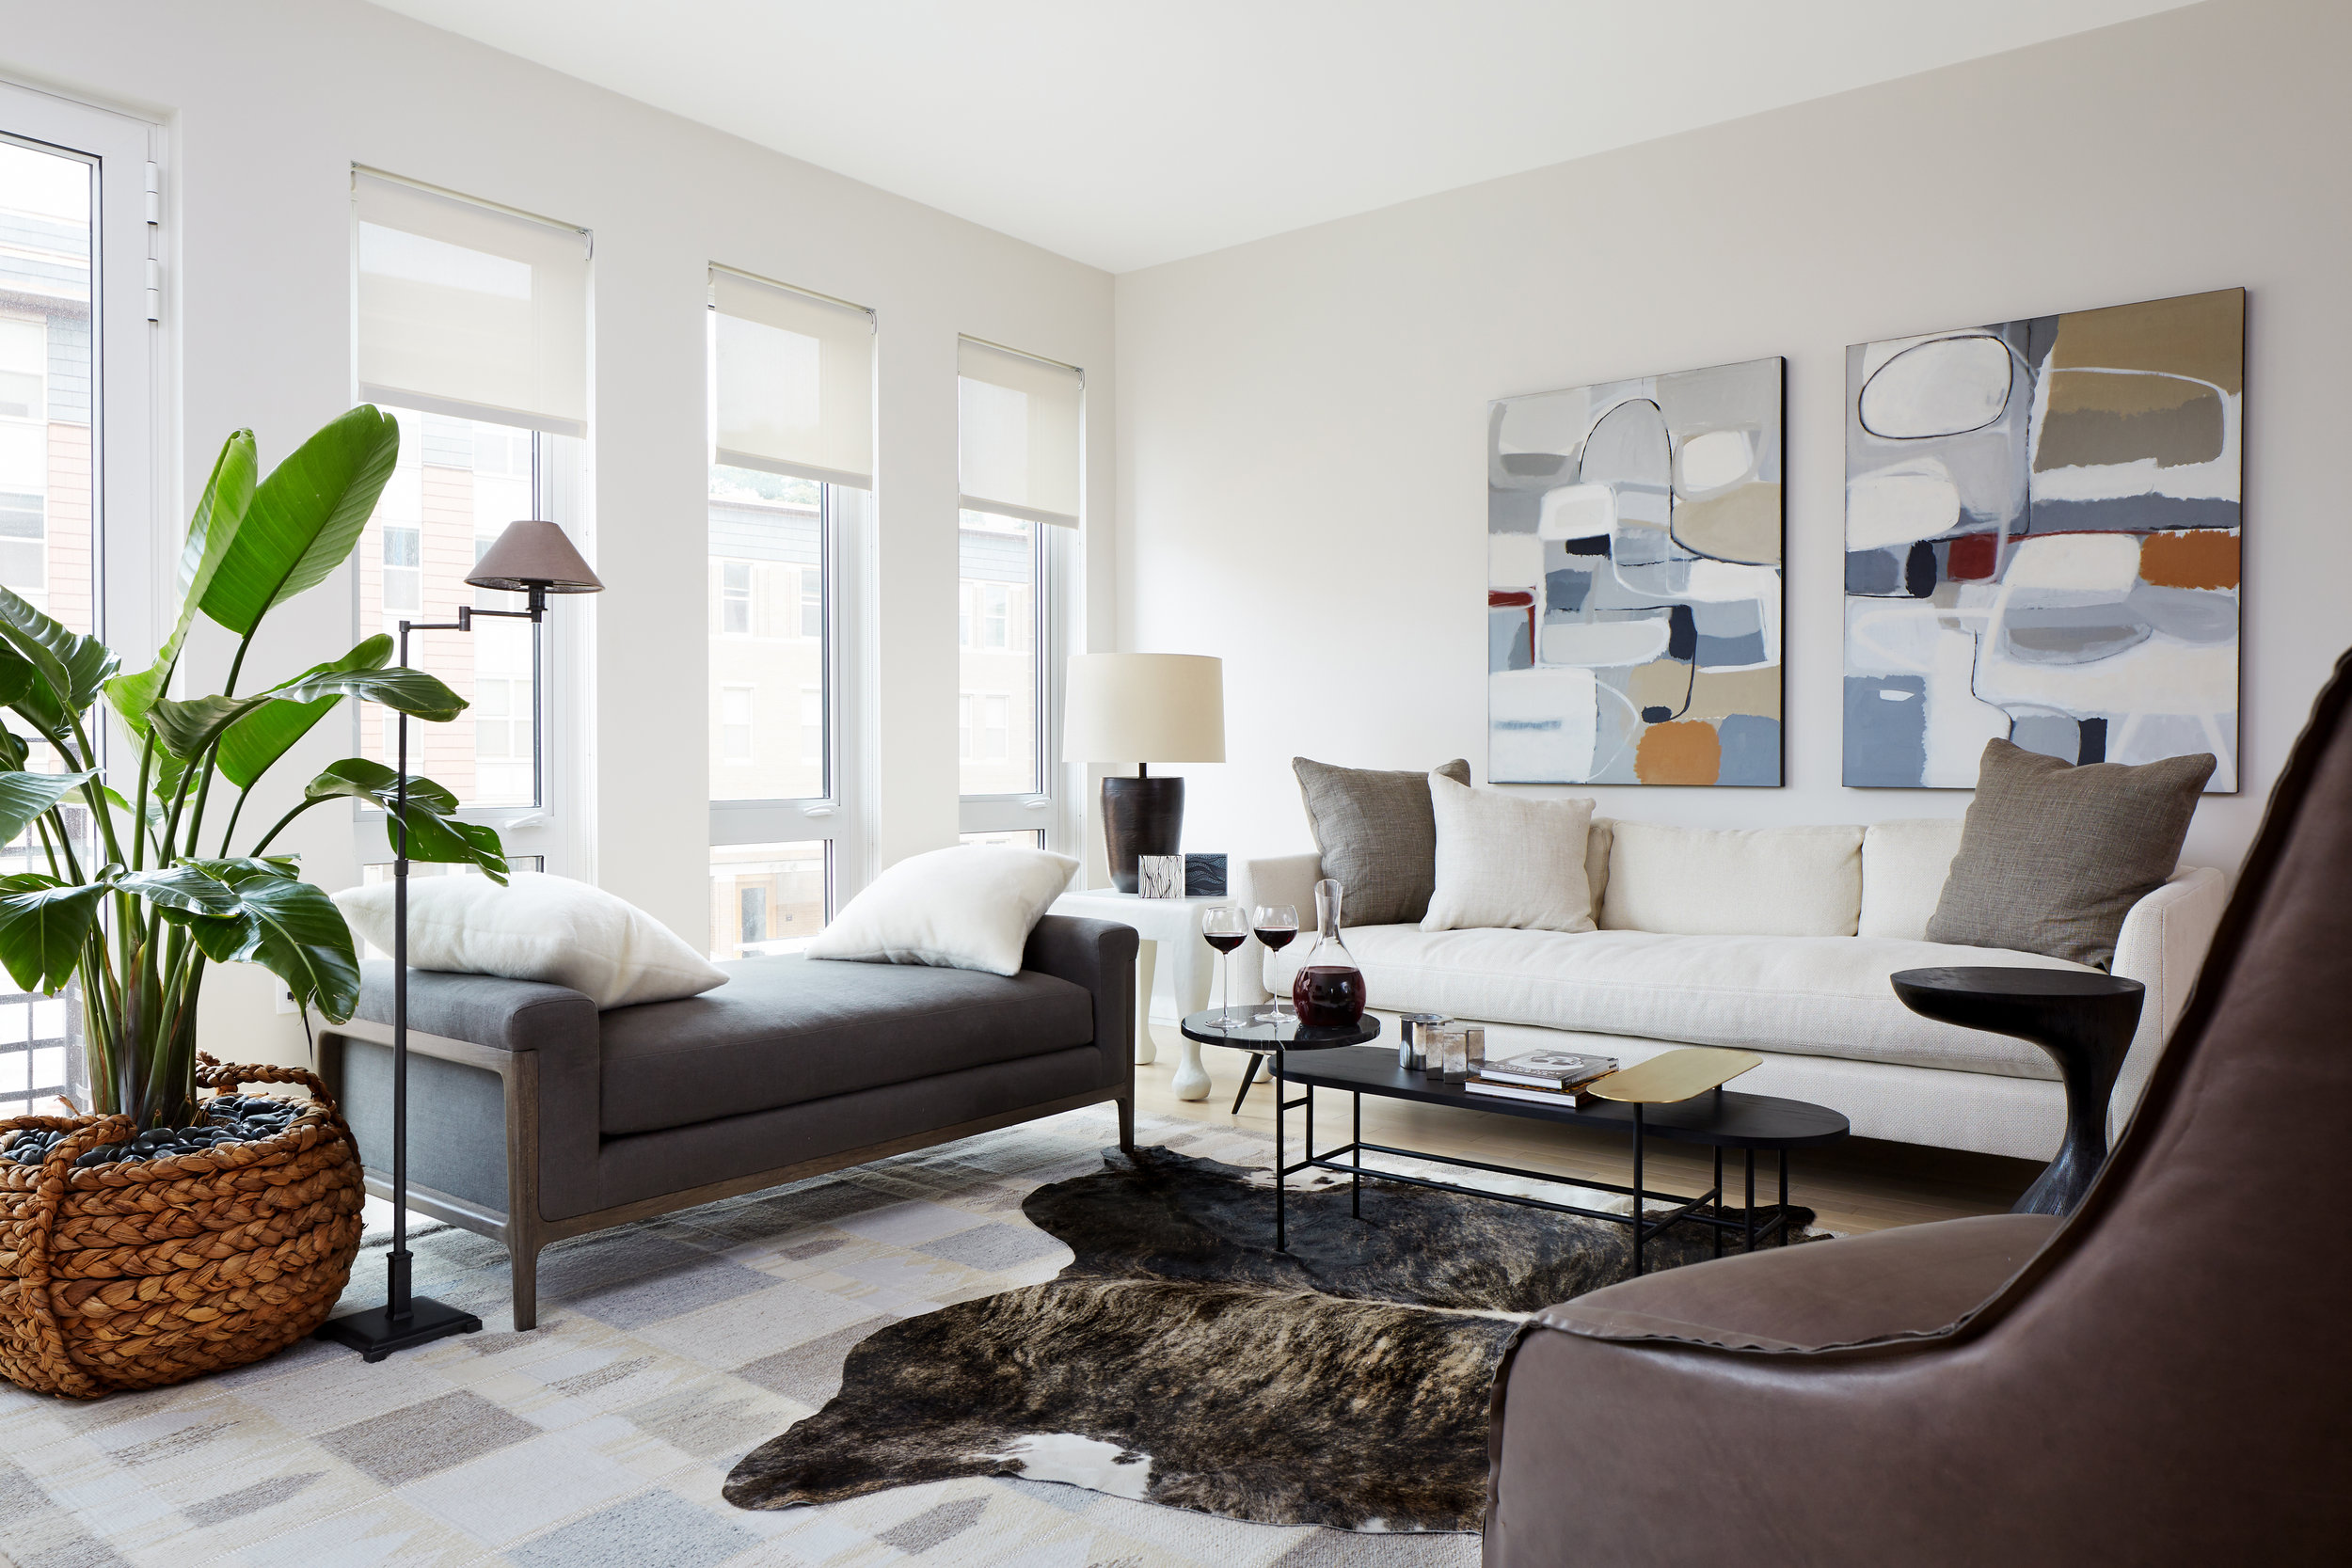 Model Apartment in Capitol Hill, Washington DC